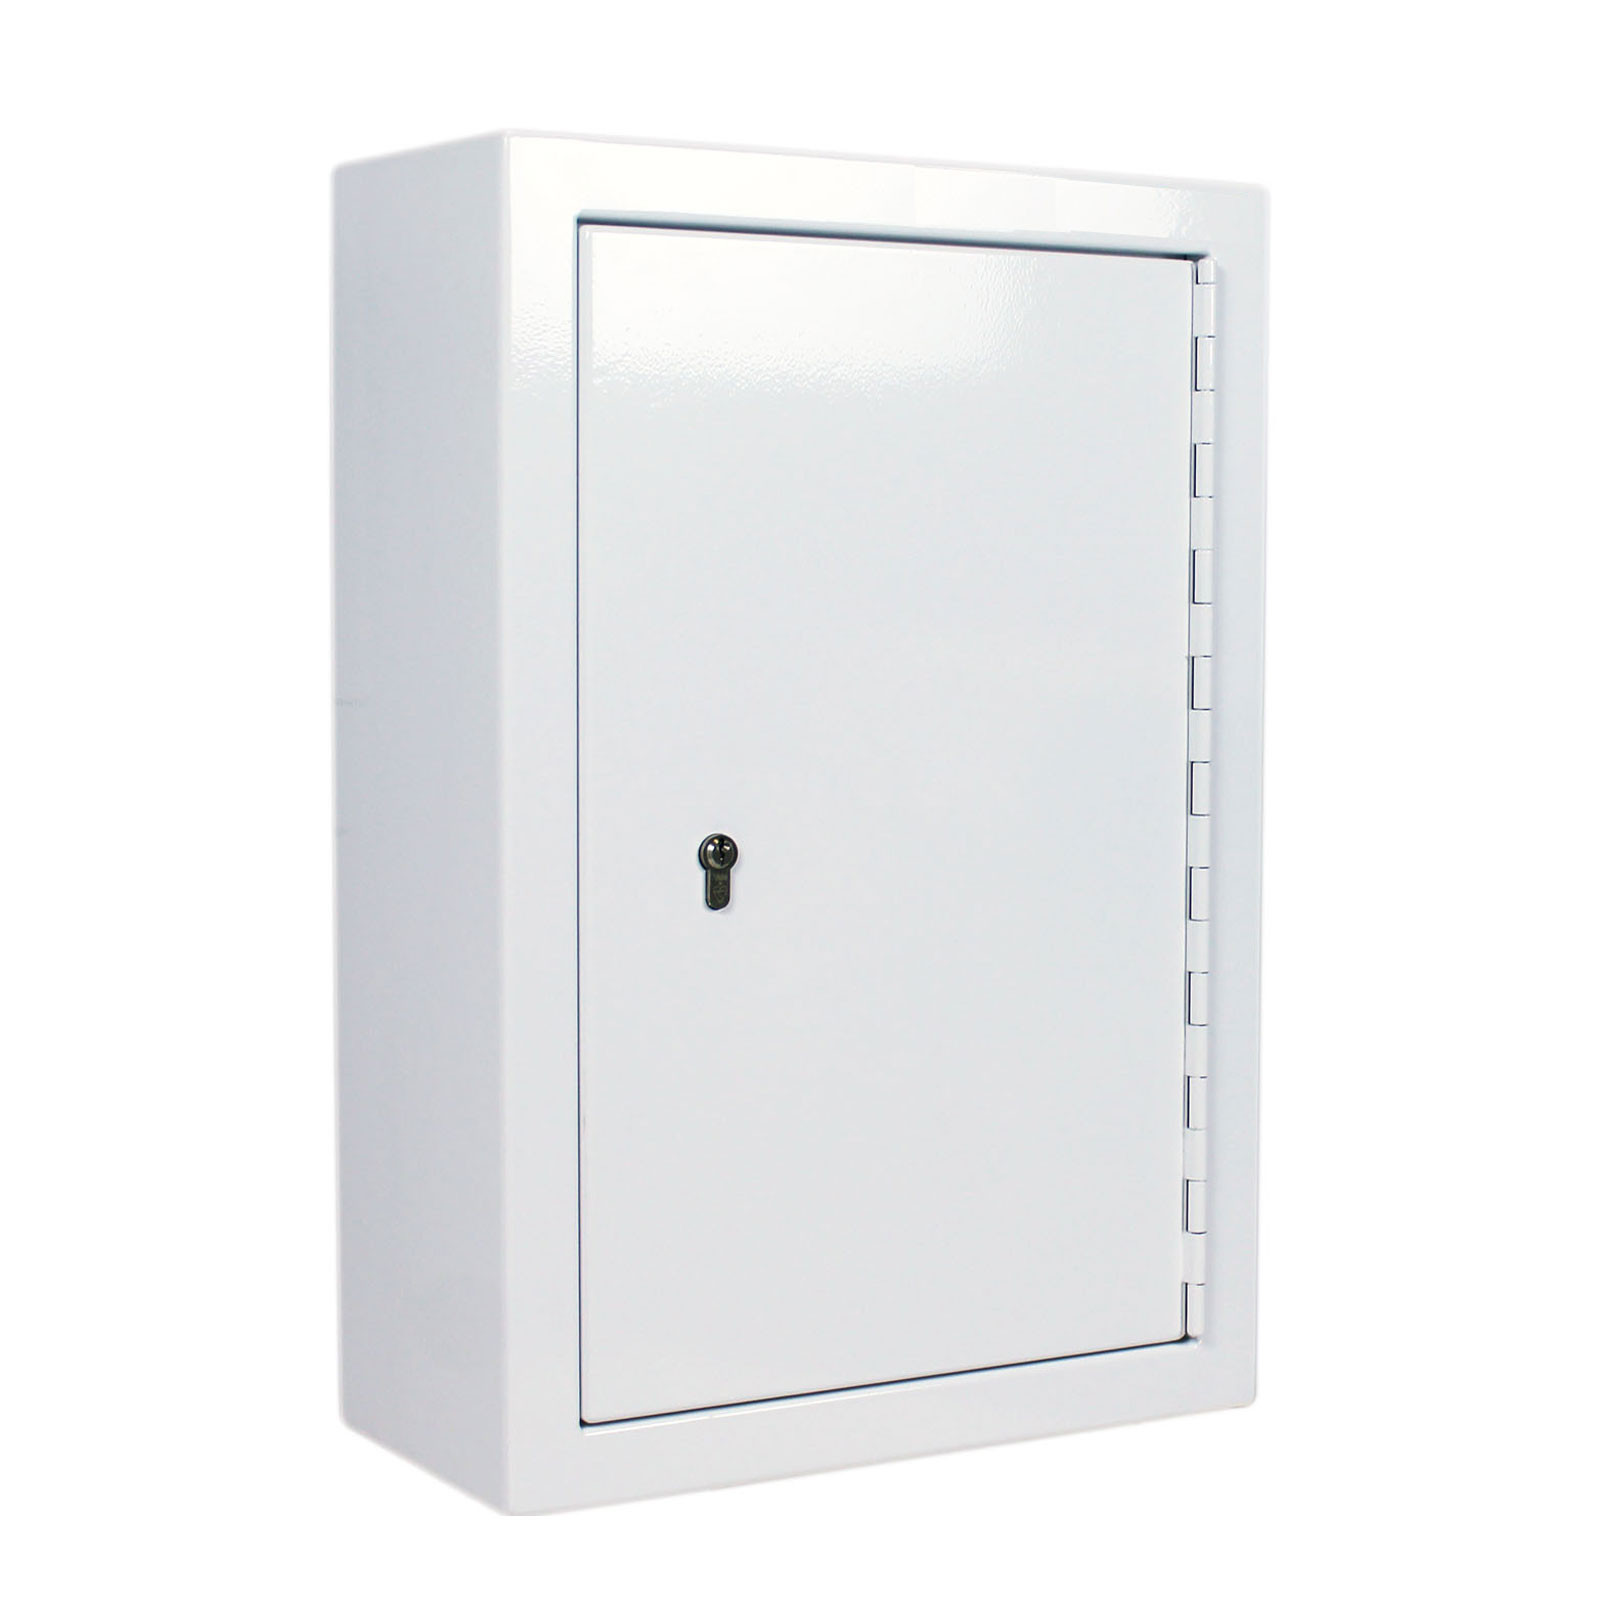 FPD 12366 controlled drug cabinet 48 litre with closed door